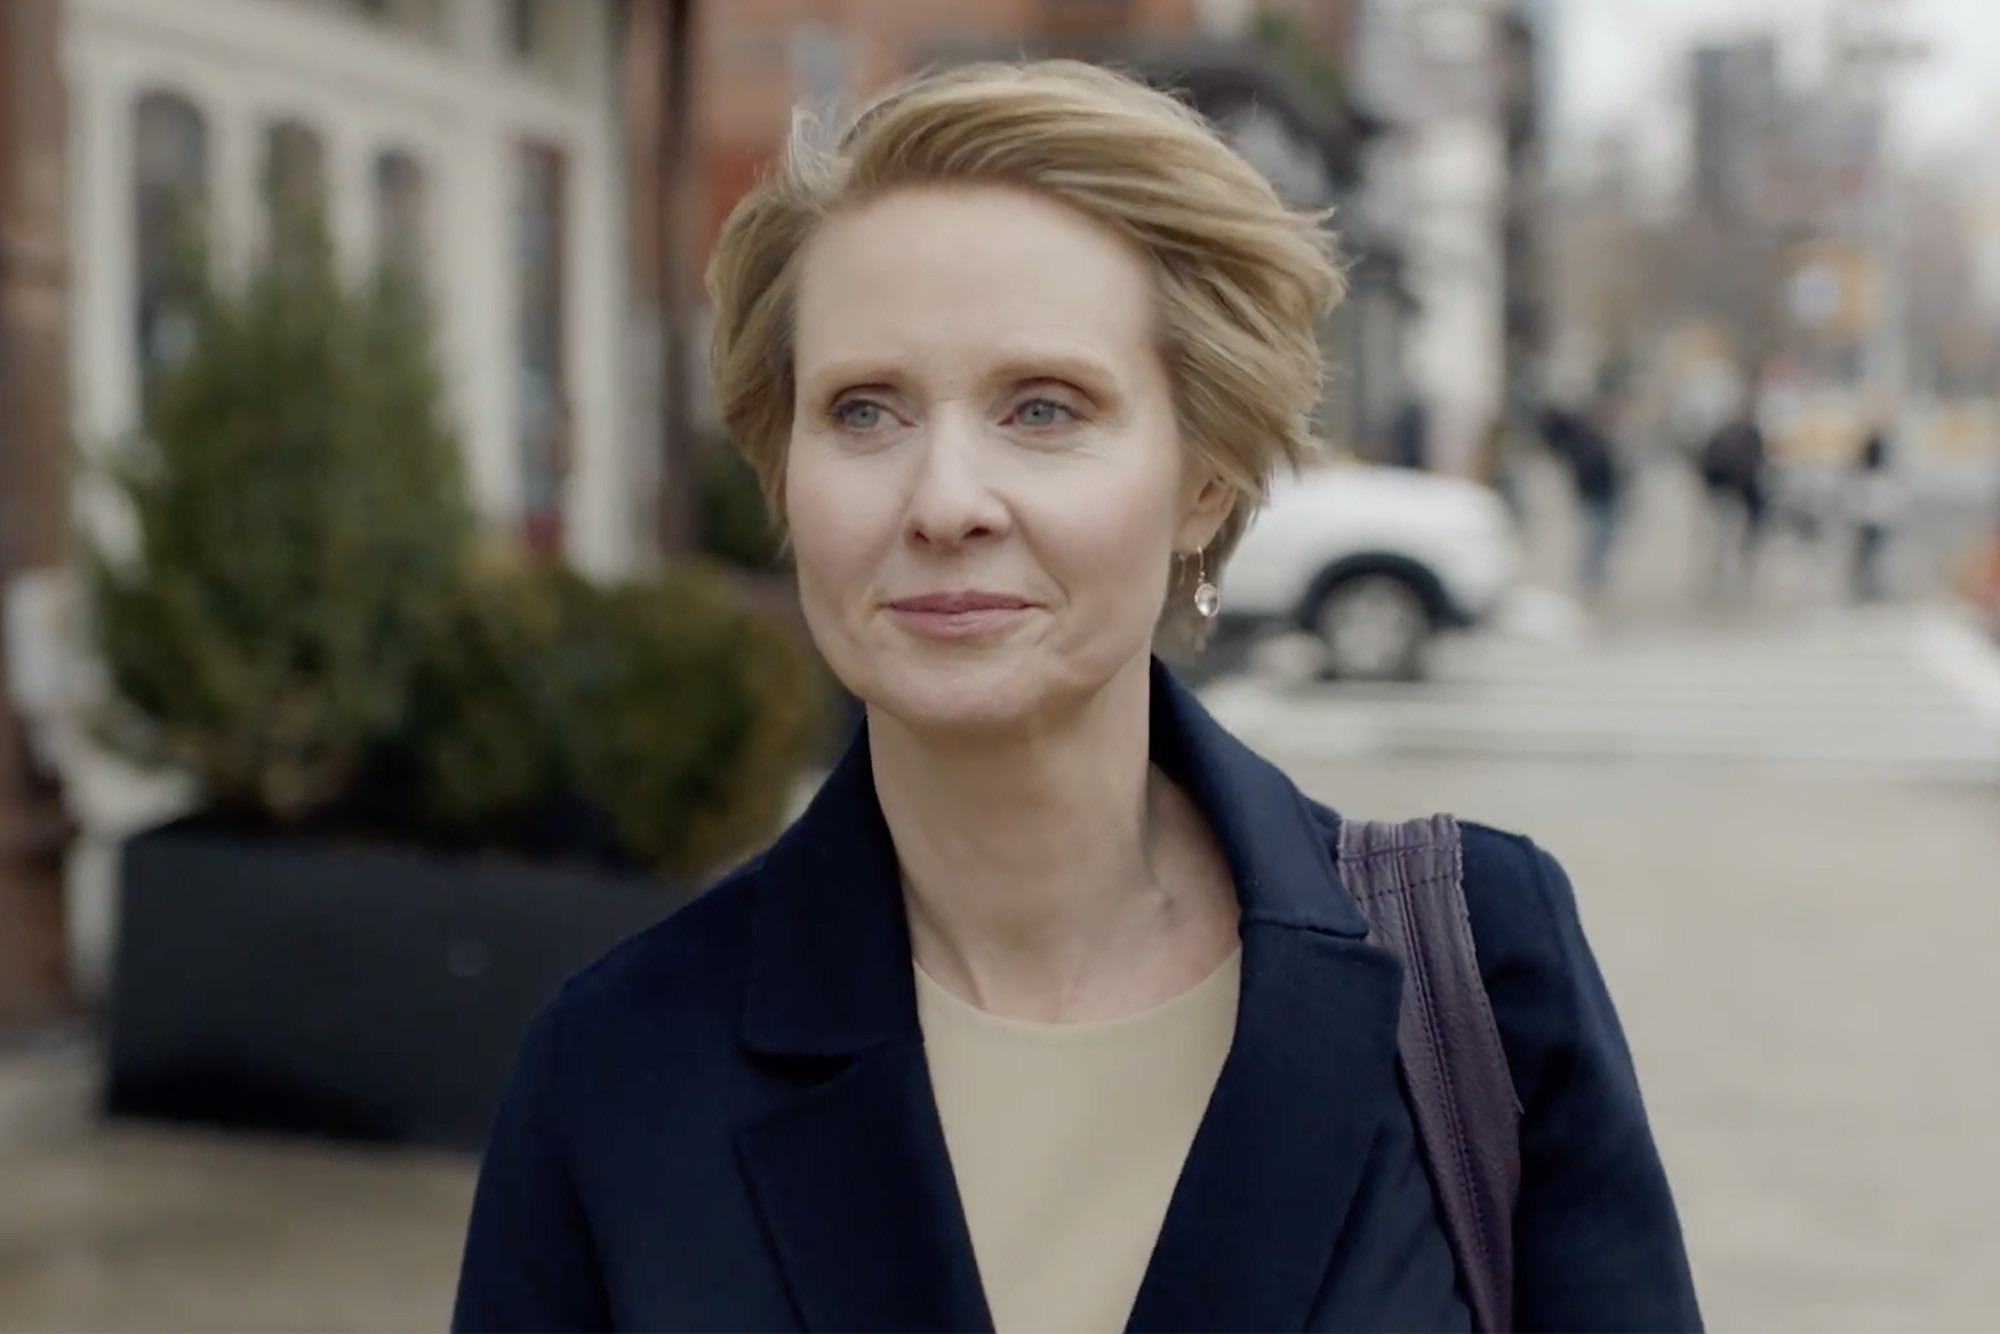 'Sex and the City' actor to run for governor of NY